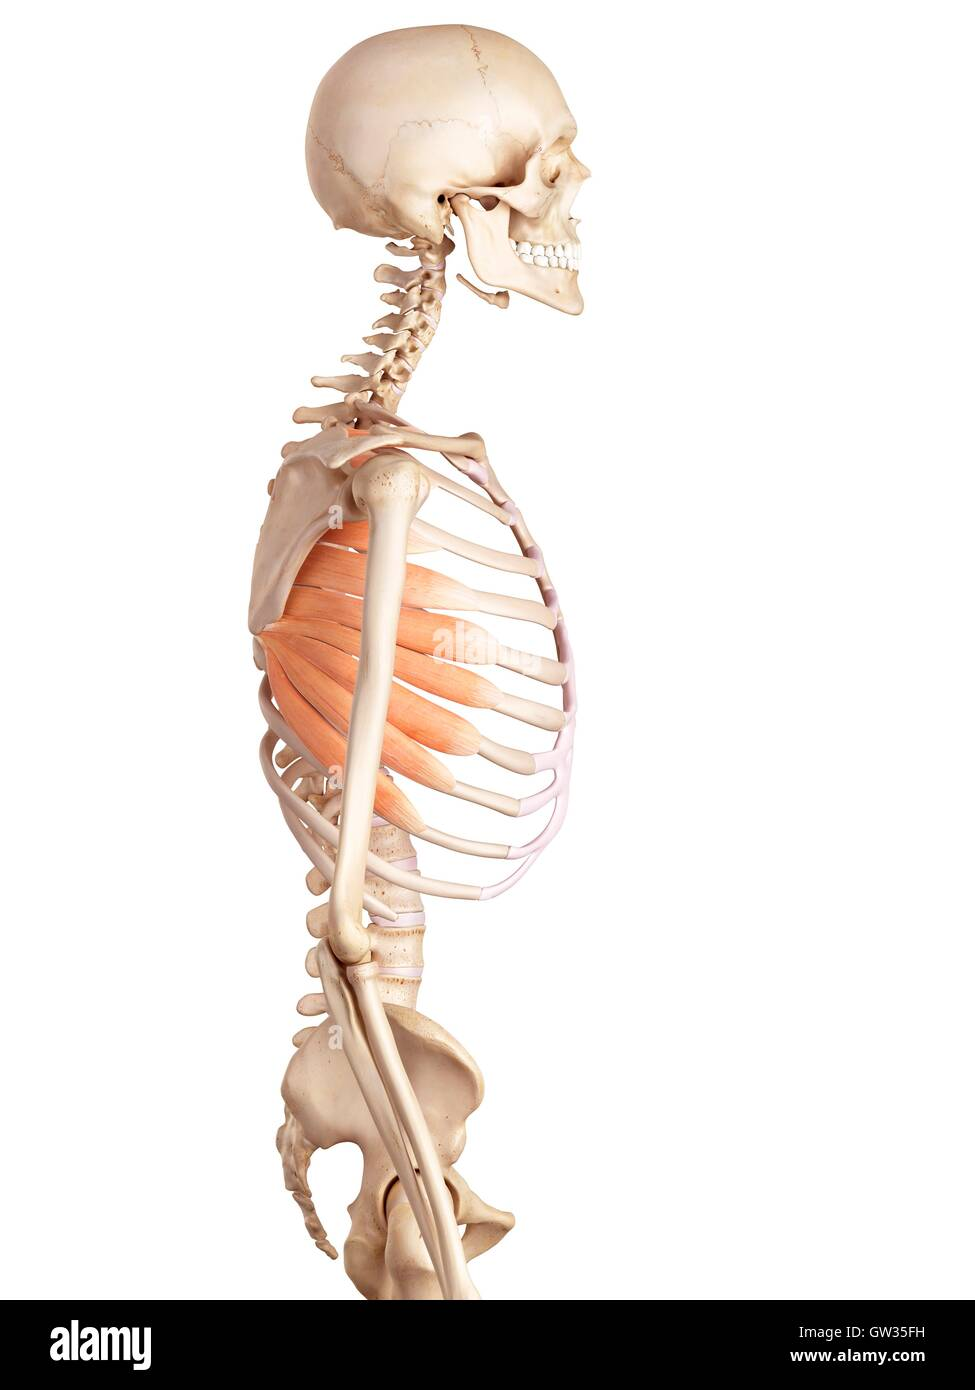 Human Rib Muscles Illustration Stock Photo 118698821 Alamy